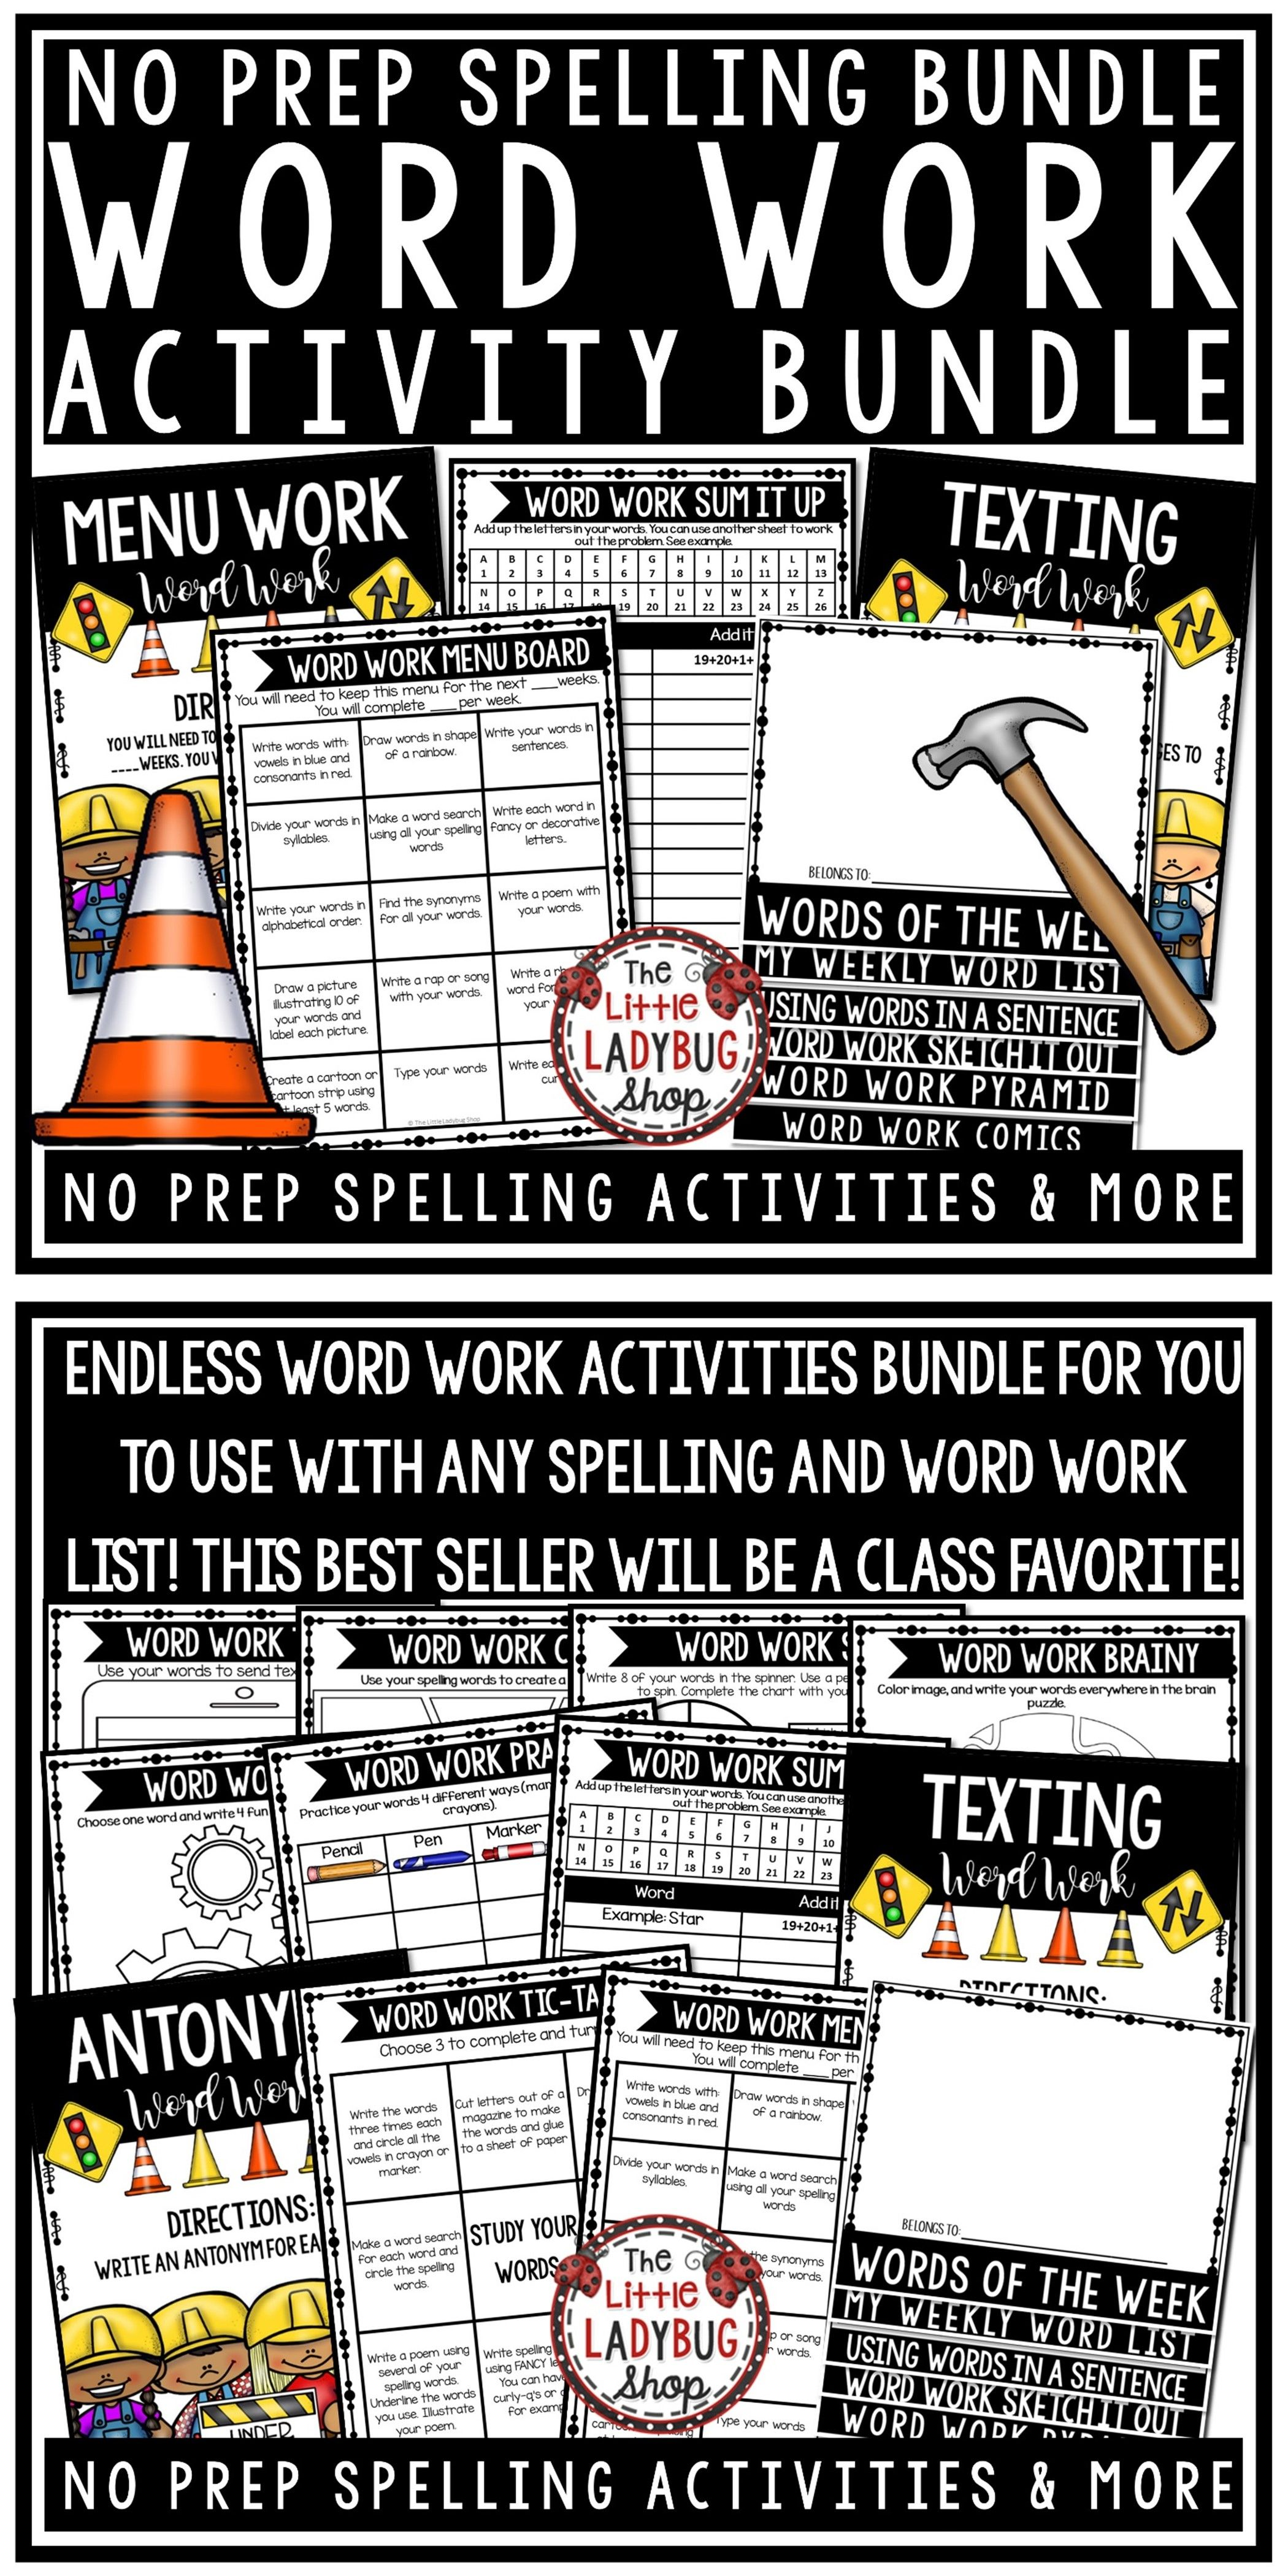 Word Work Activities Amp Spelling Activity Any List Words